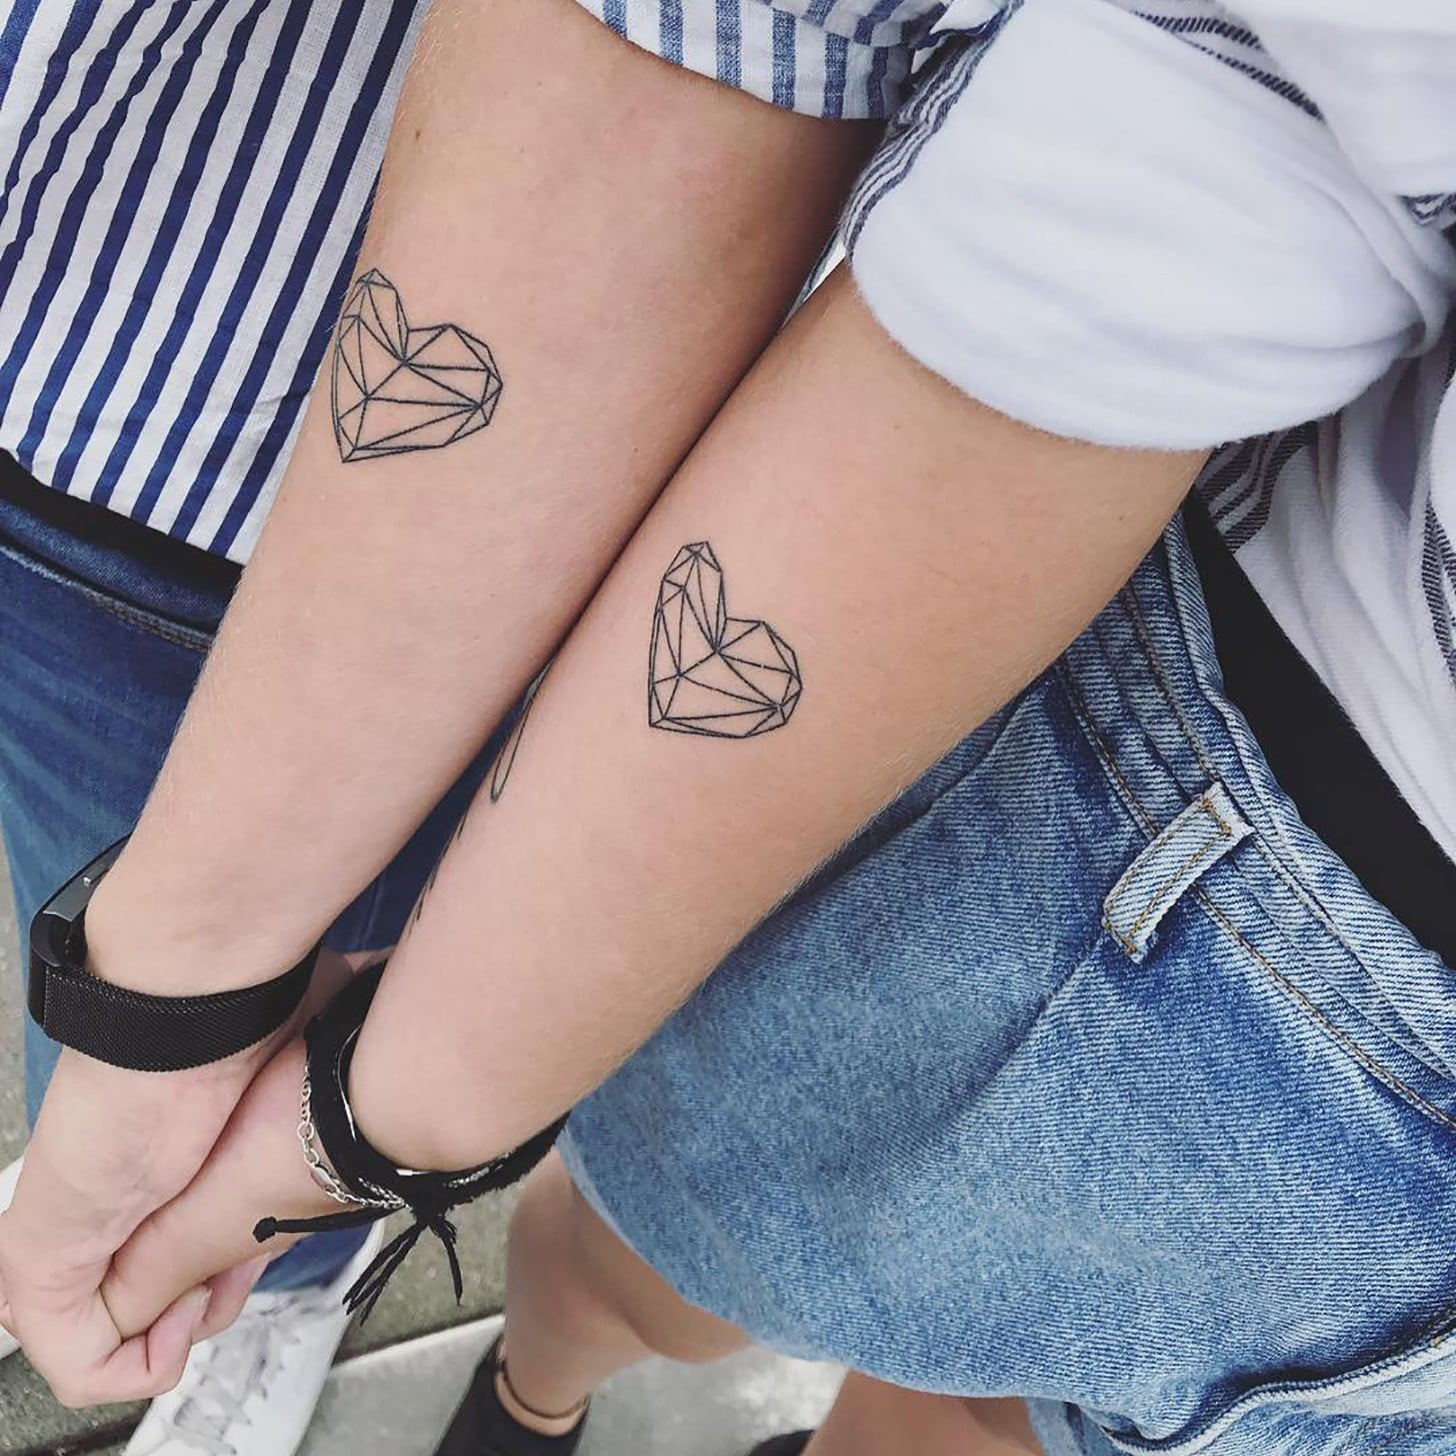 37498c022559f Matching Tattoo Ideas | POPSUGAR Love & Sex